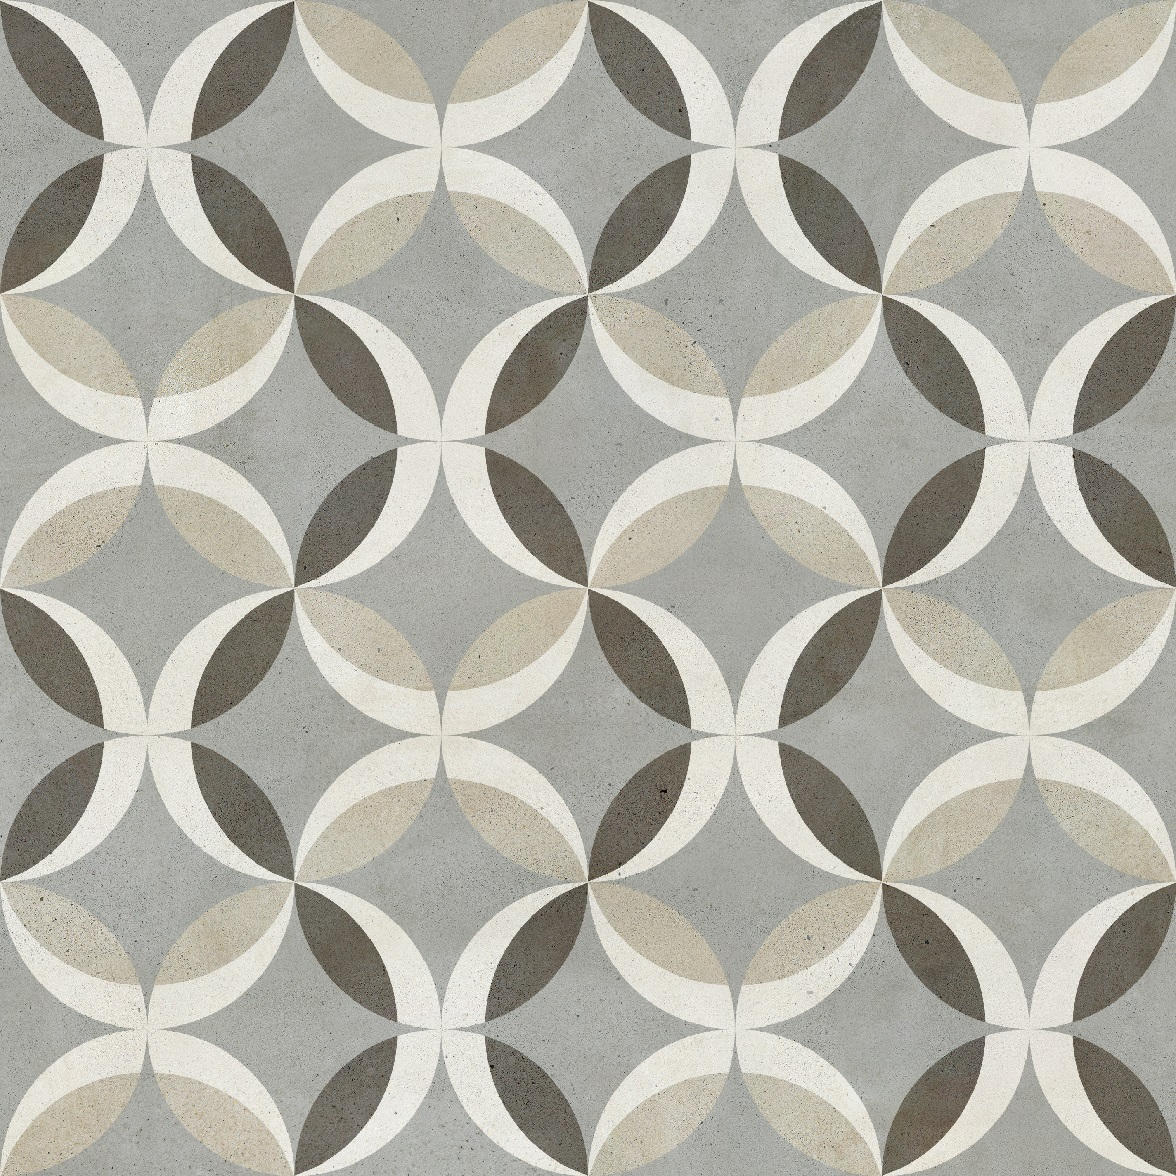 Beton 25 Tile Mix Wall Or Floor Tile